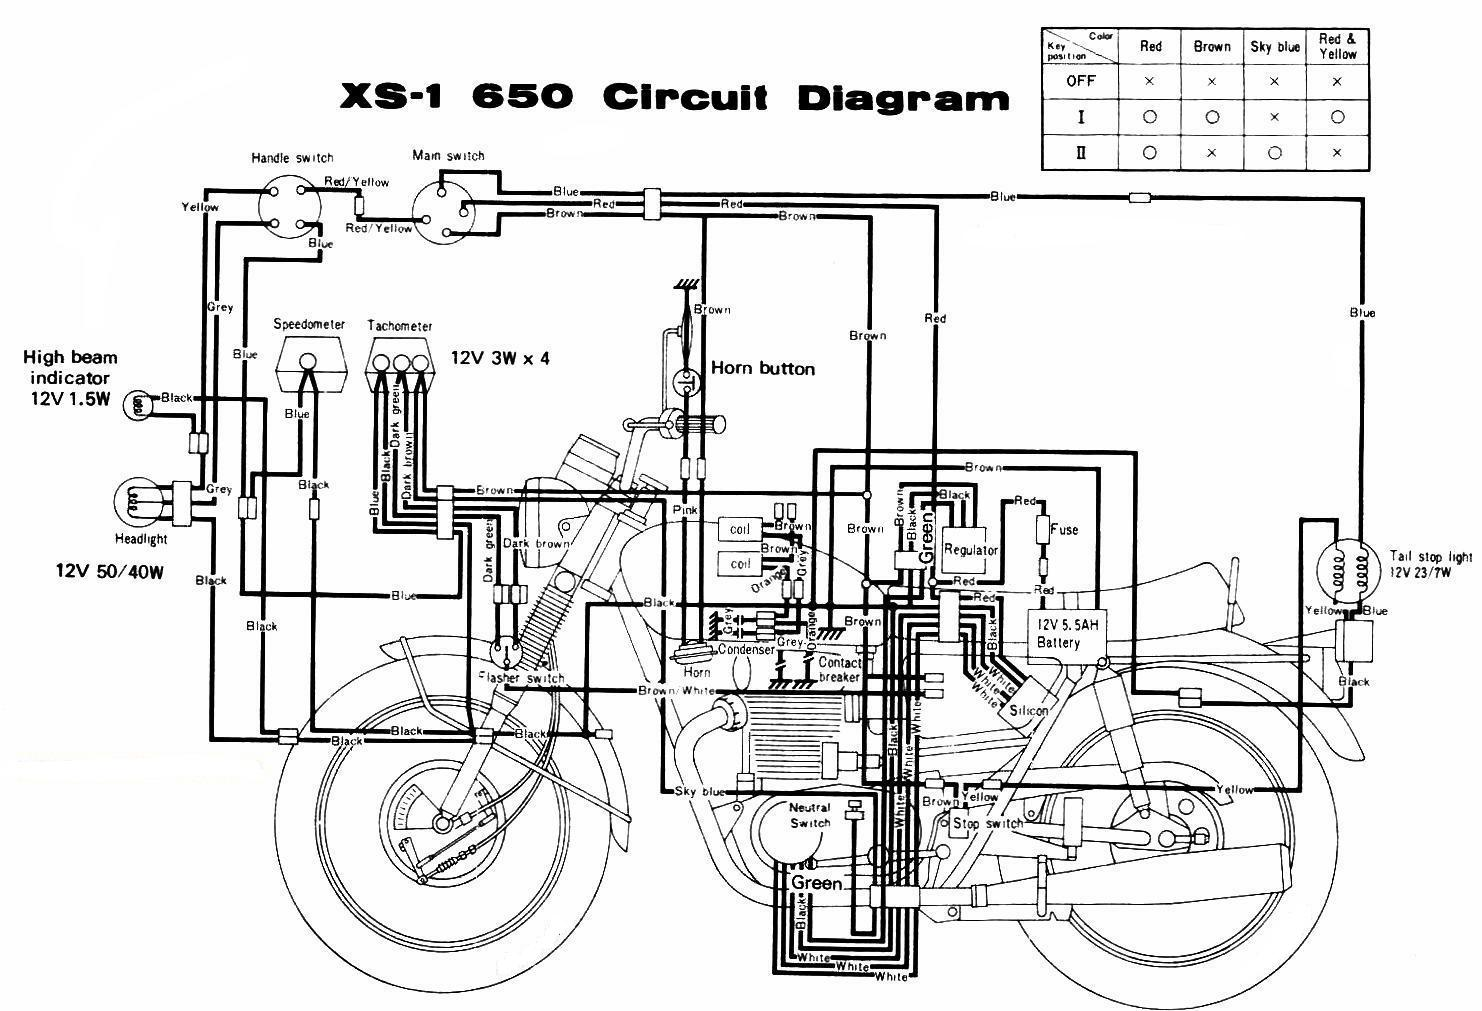 Bajaj bike wiring diagram trusted wiring diagrams bajaj pulsar wiring diagram free vehicle wiring diagrams u2022 rh addone tw suzuki bikes bajaj boxer asfbconference2016